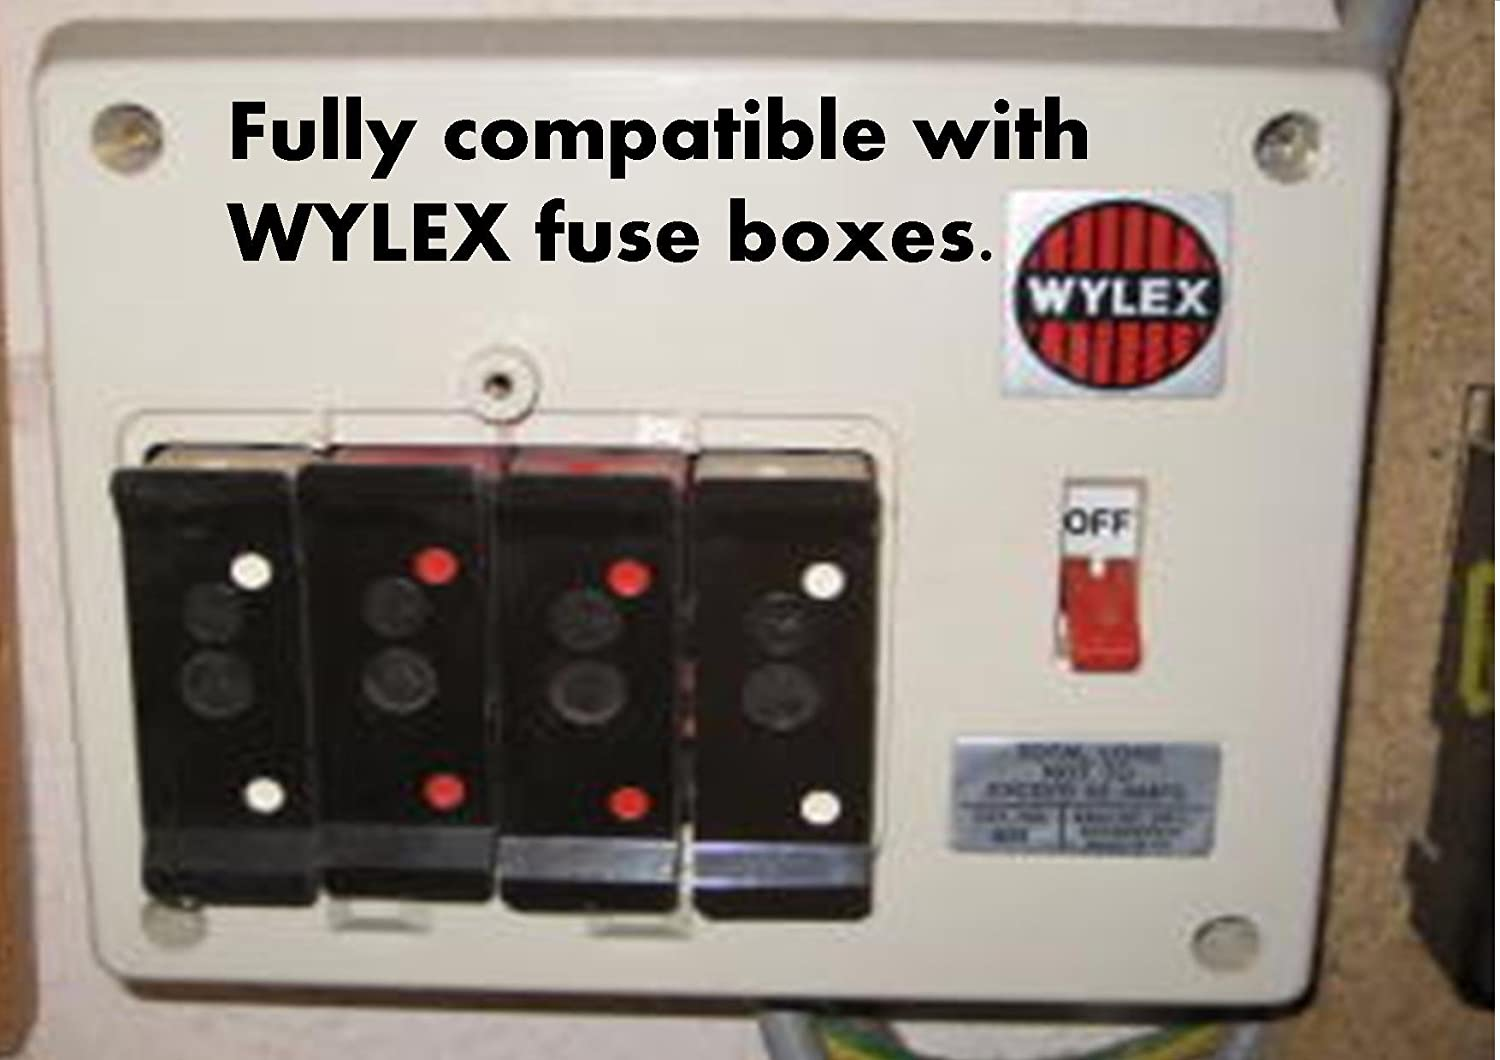 Wylex Fuse Box Not Working - Wiring Diagram Direct quit-produce -  quit-produce.siciliabeb.it | Wylex Fuse Box Manual |  | quit-produce.siciliabeb.it